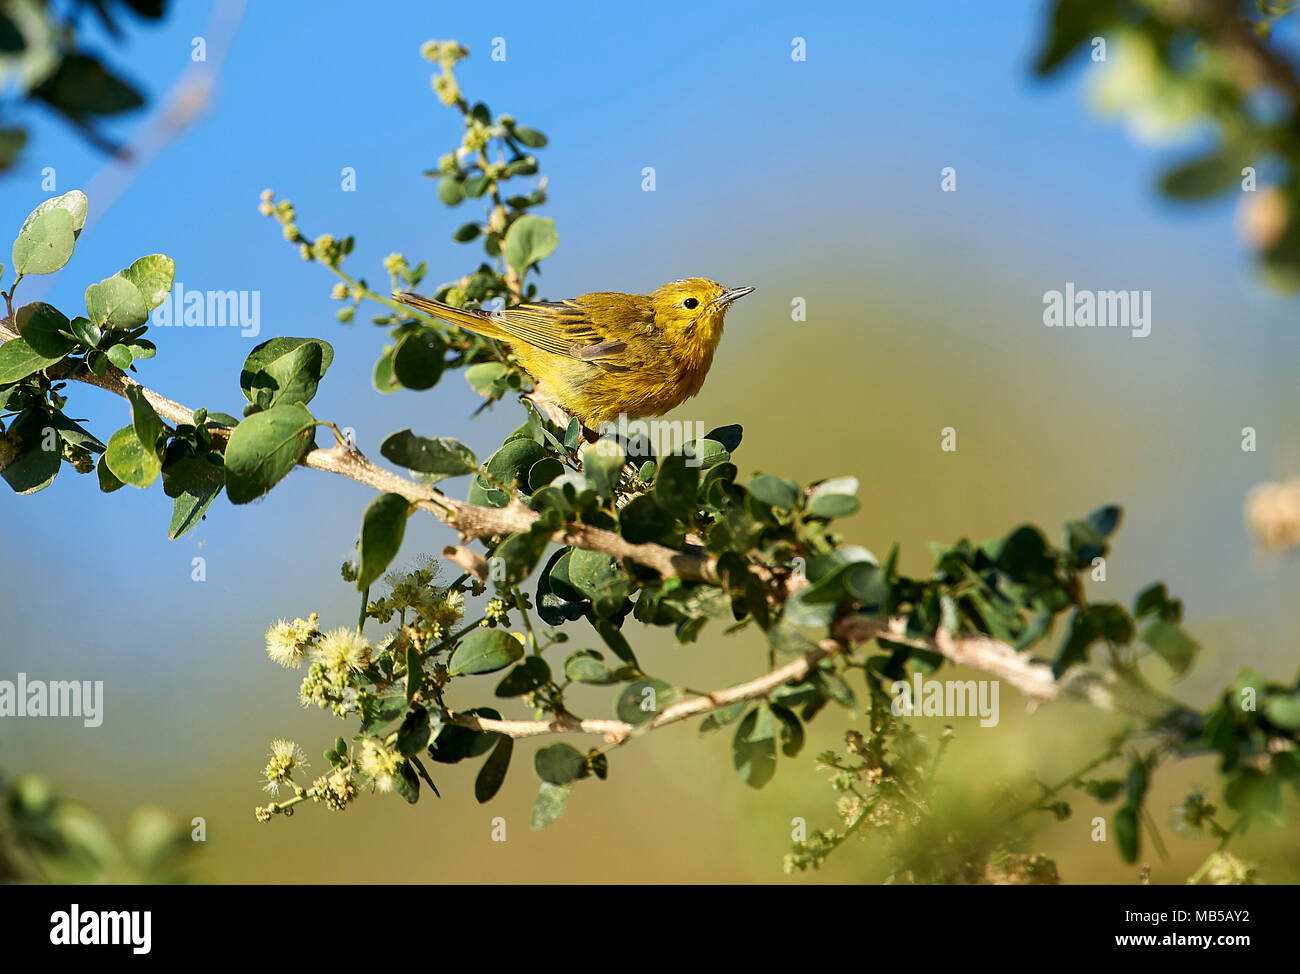 American Yellow Warbler (Dendroica petechia) perched in a tree, Jocotopec, Jalisco, Mexico - Stock Image